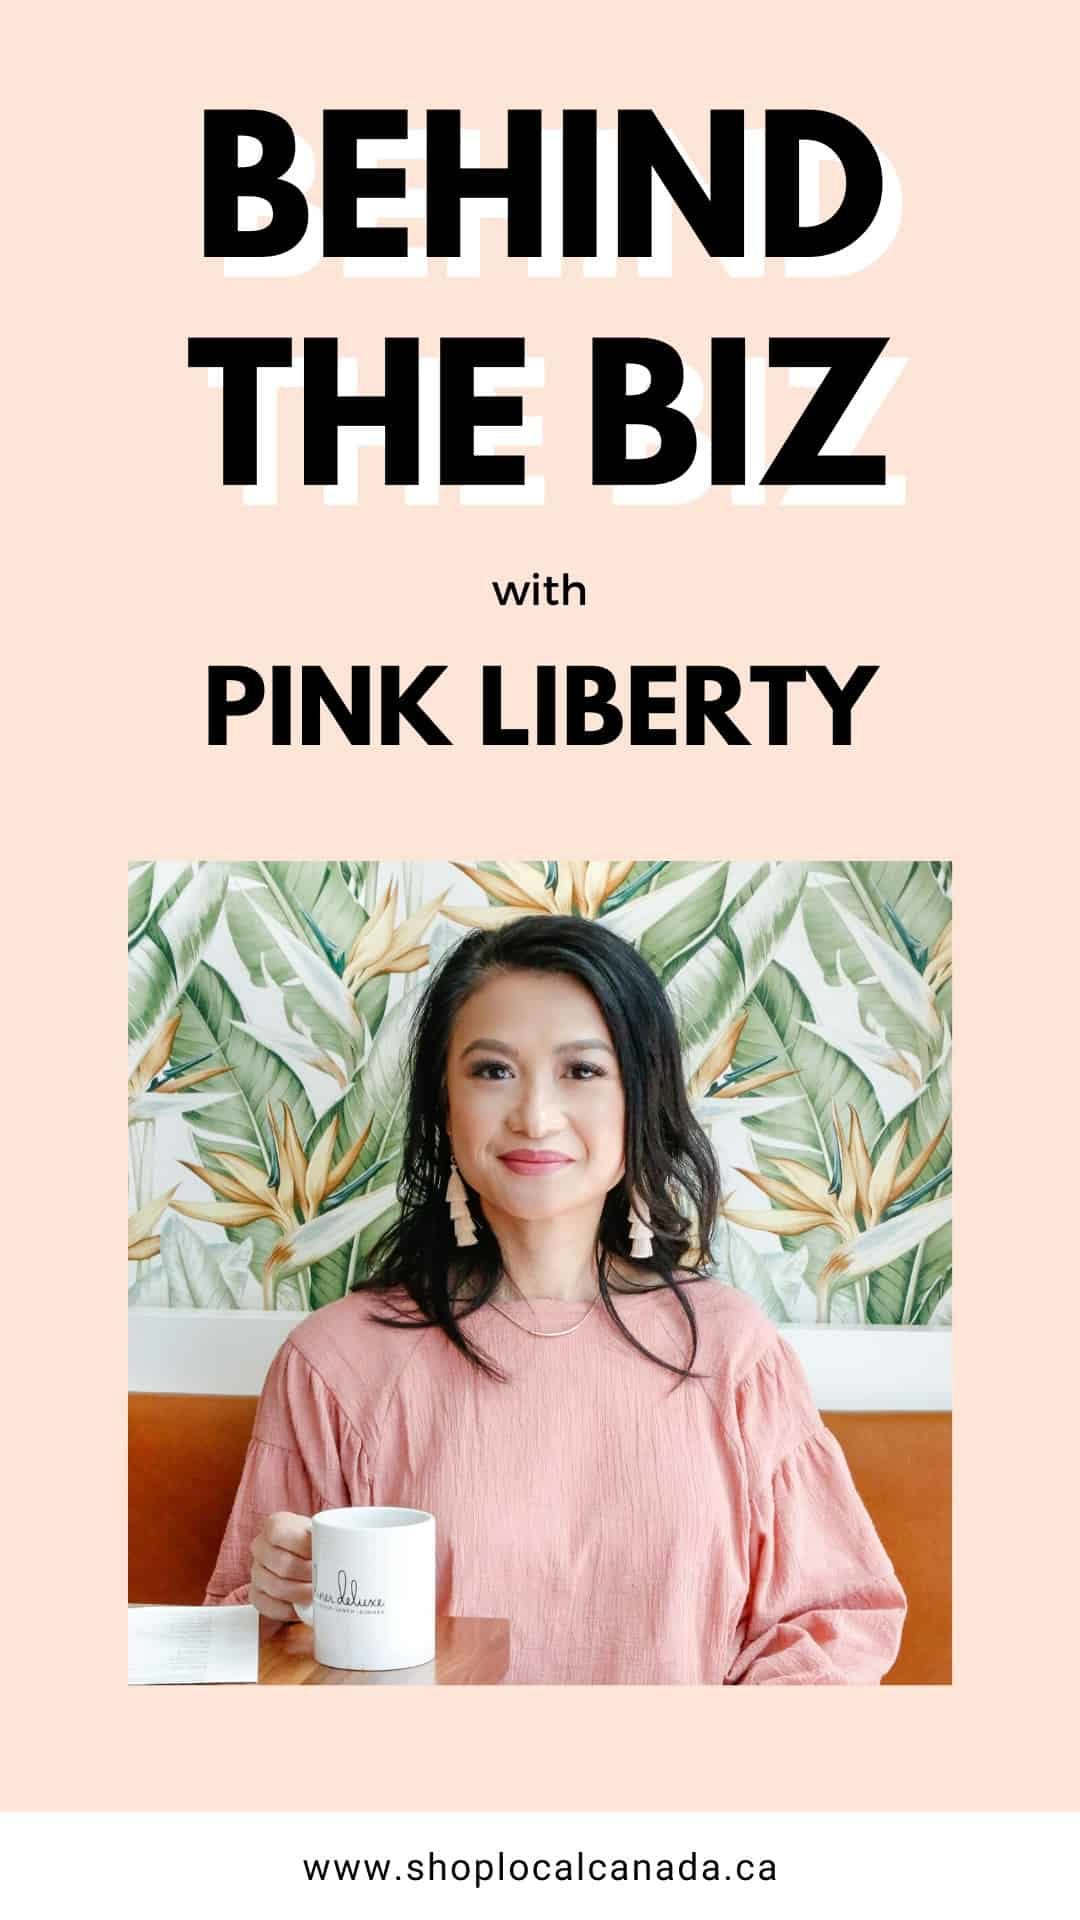 Behind The Biz with Pink Liberty